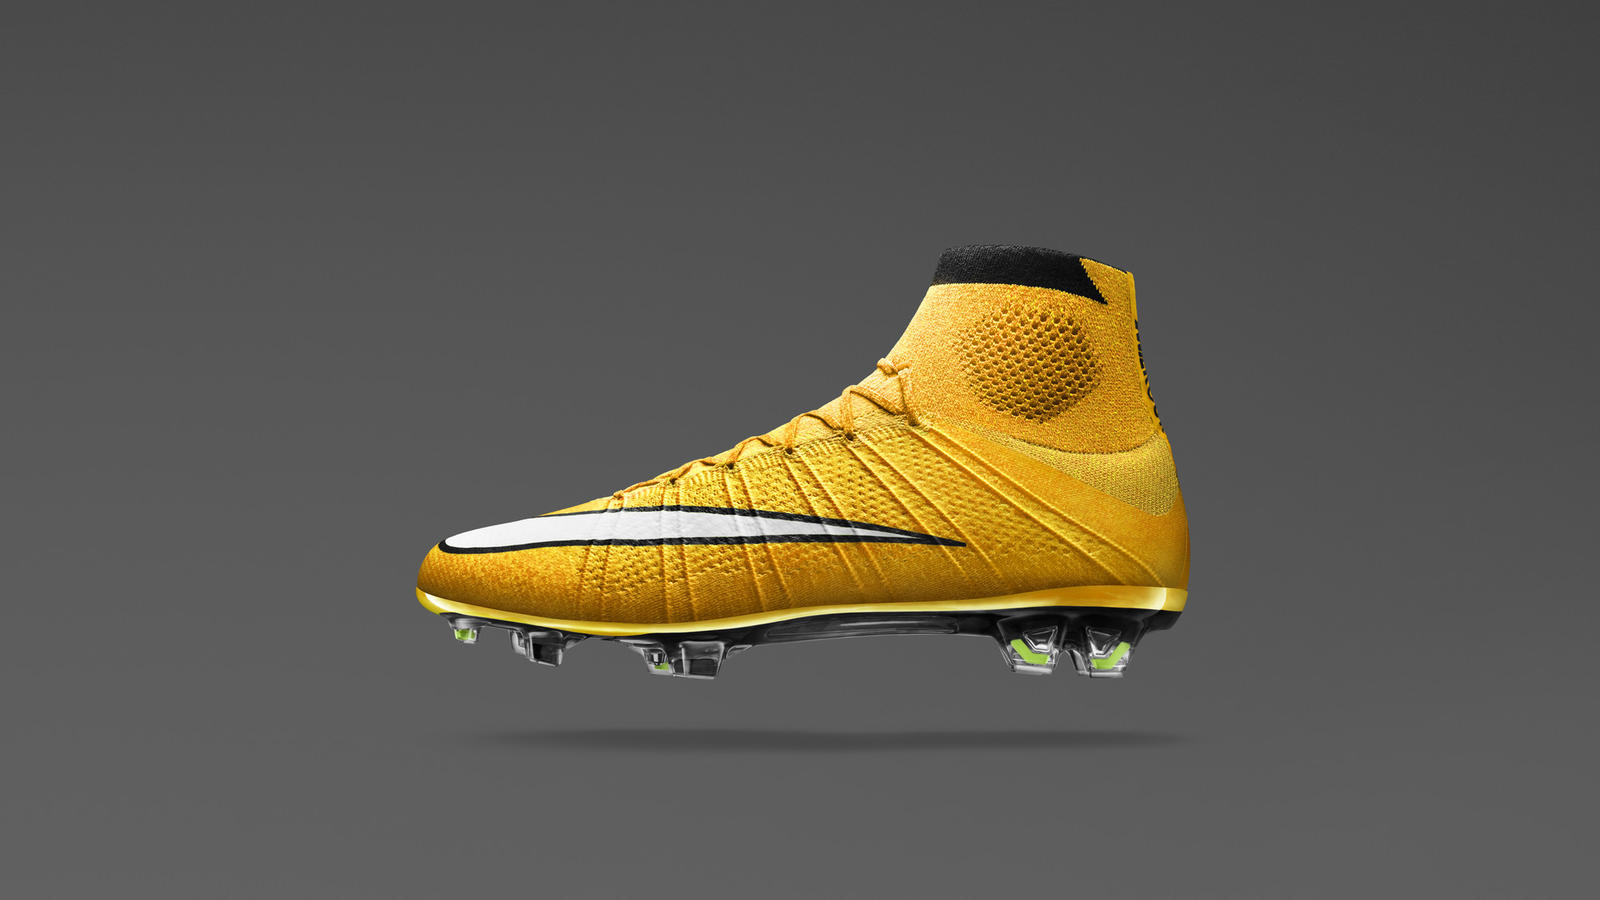 Ho14 Merc Superfly_Profile Lateral